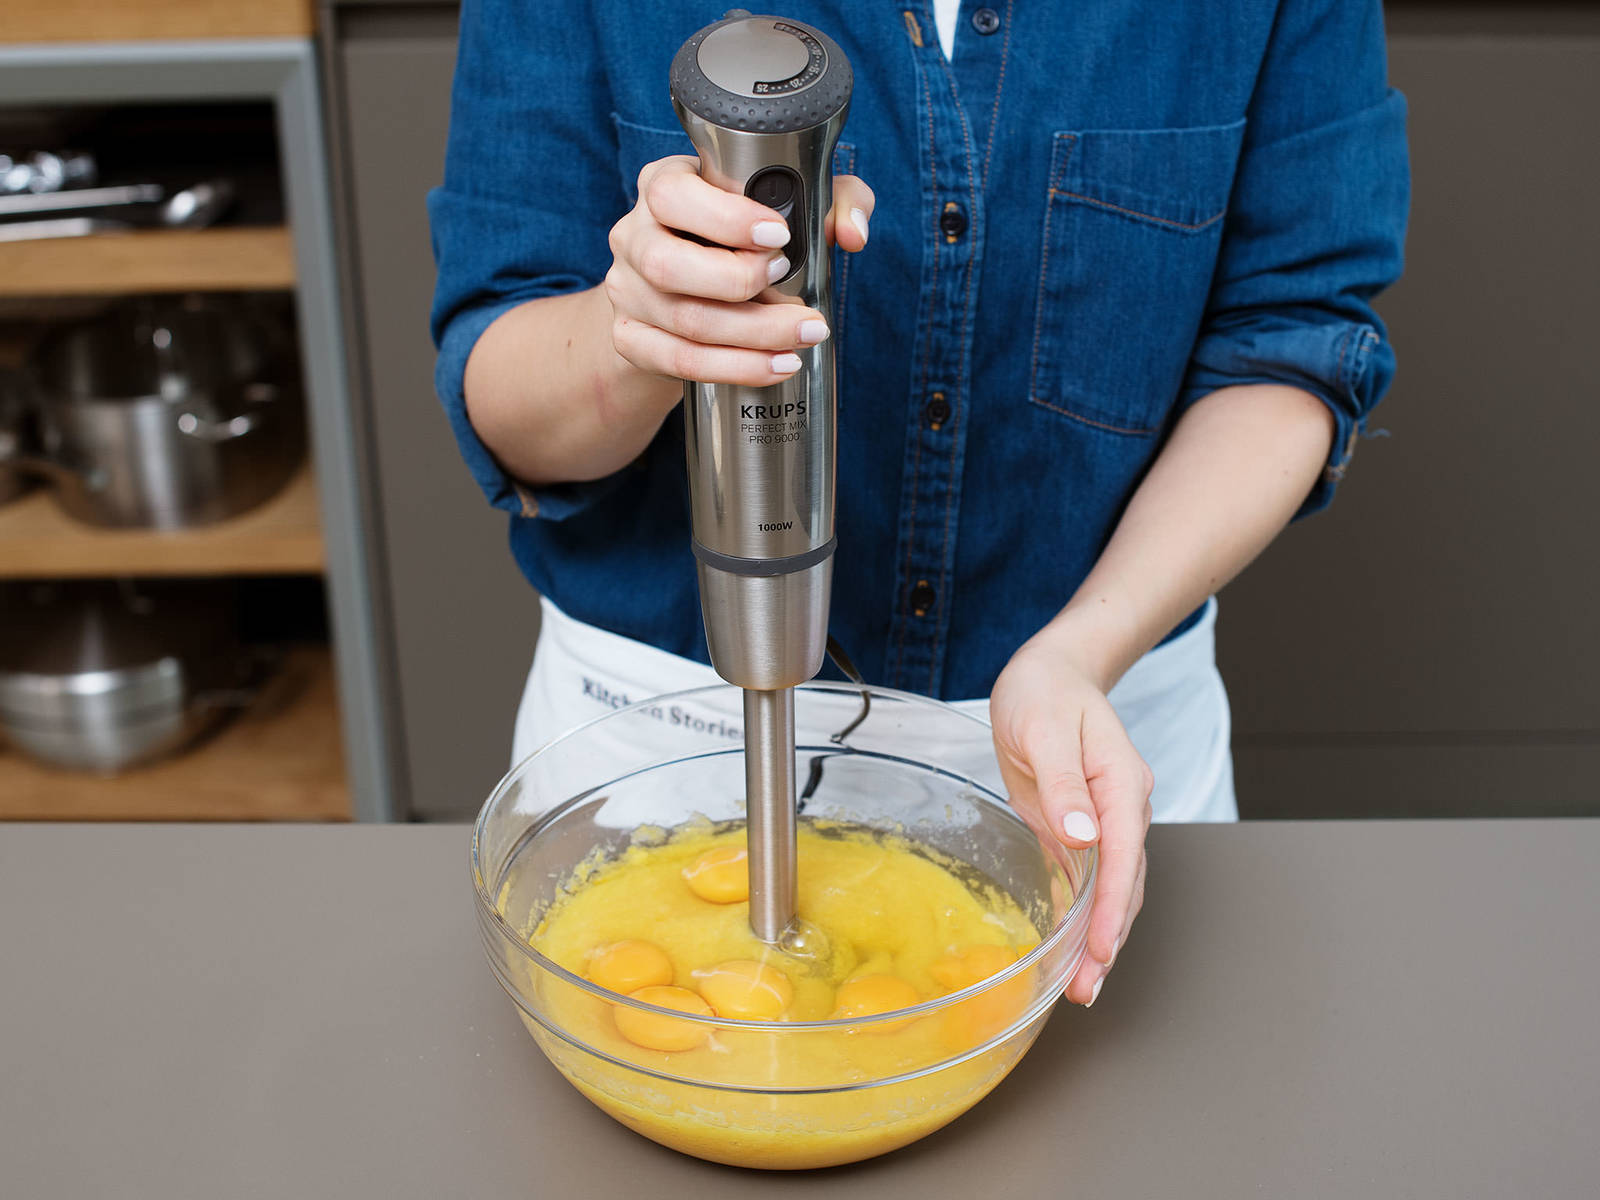 Pre-heat oven to 170°C/340°F. Quarter oranges and remove seeds. Blend oranges with a hand blender in a large bowl, including skins. Add eggs and blend until smooth. In a separate large bowl, mix together ground almonds, sugar, baking soda, and baking powder. Add to wet ingredients and blend until batter is smooth.